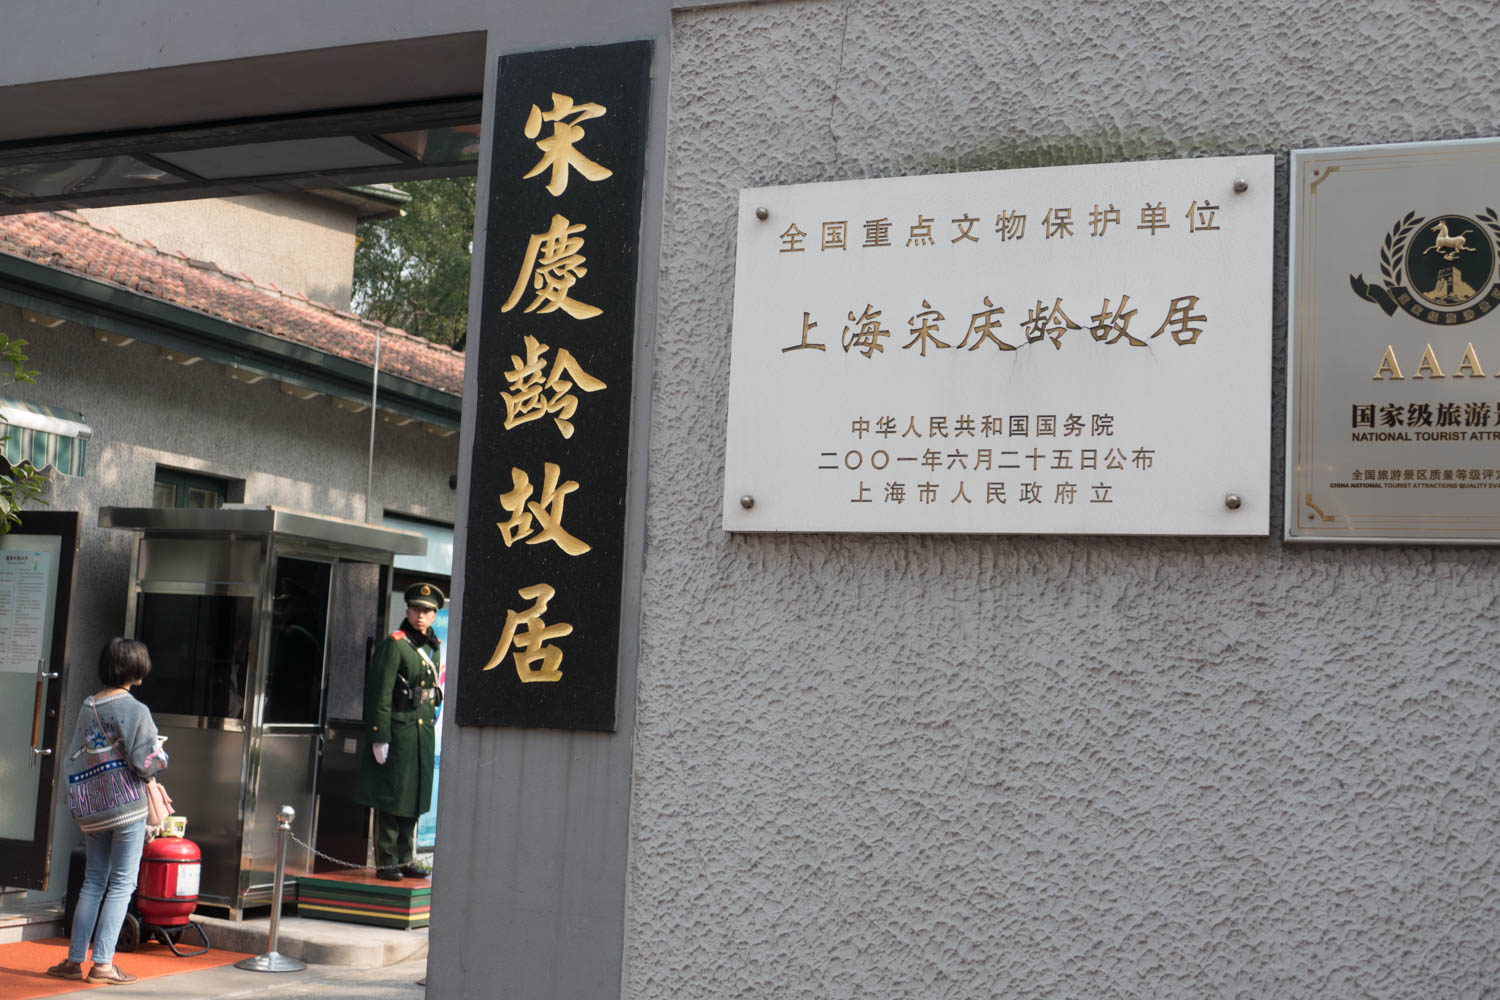 Residence of Soong Ching-ling